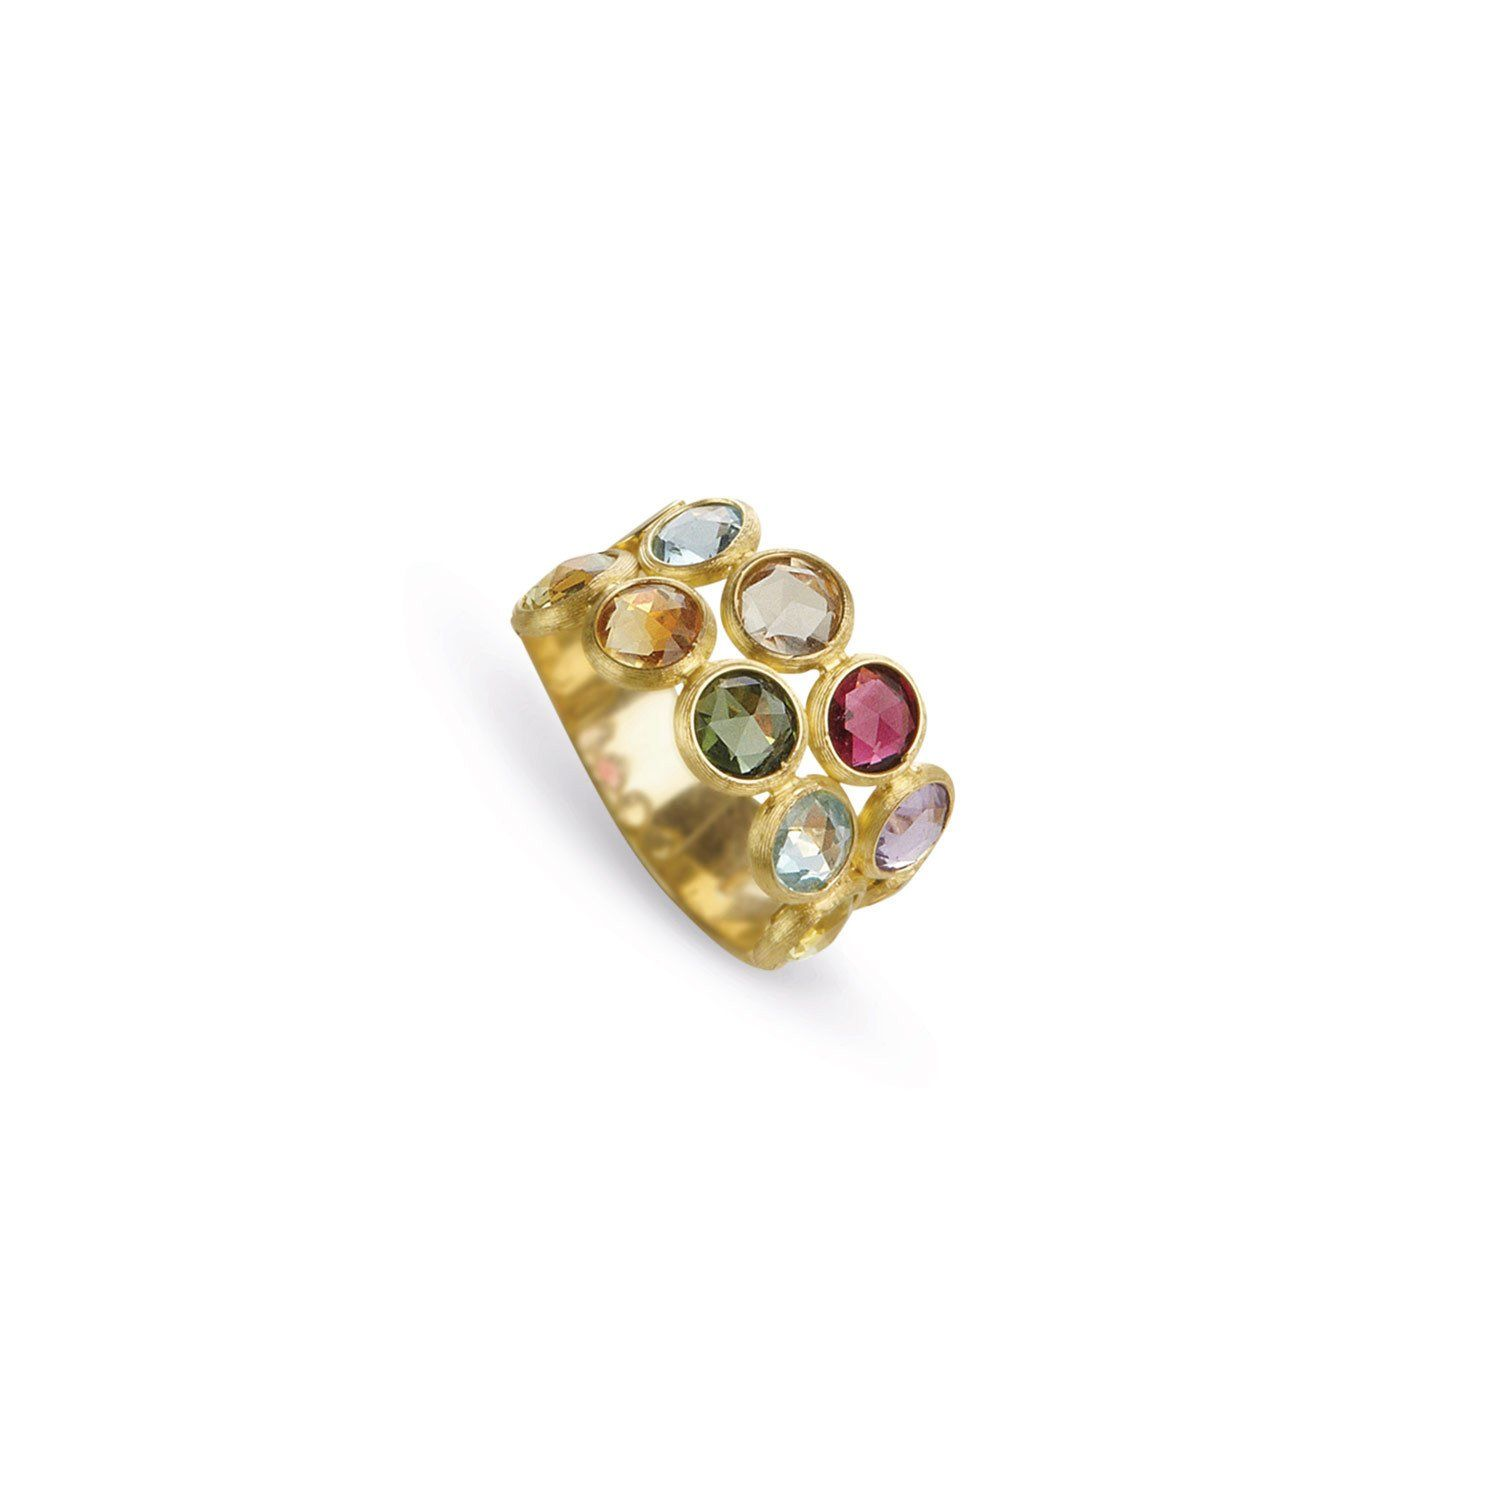 Jaipur Two Row Mixed Gemstones Ring